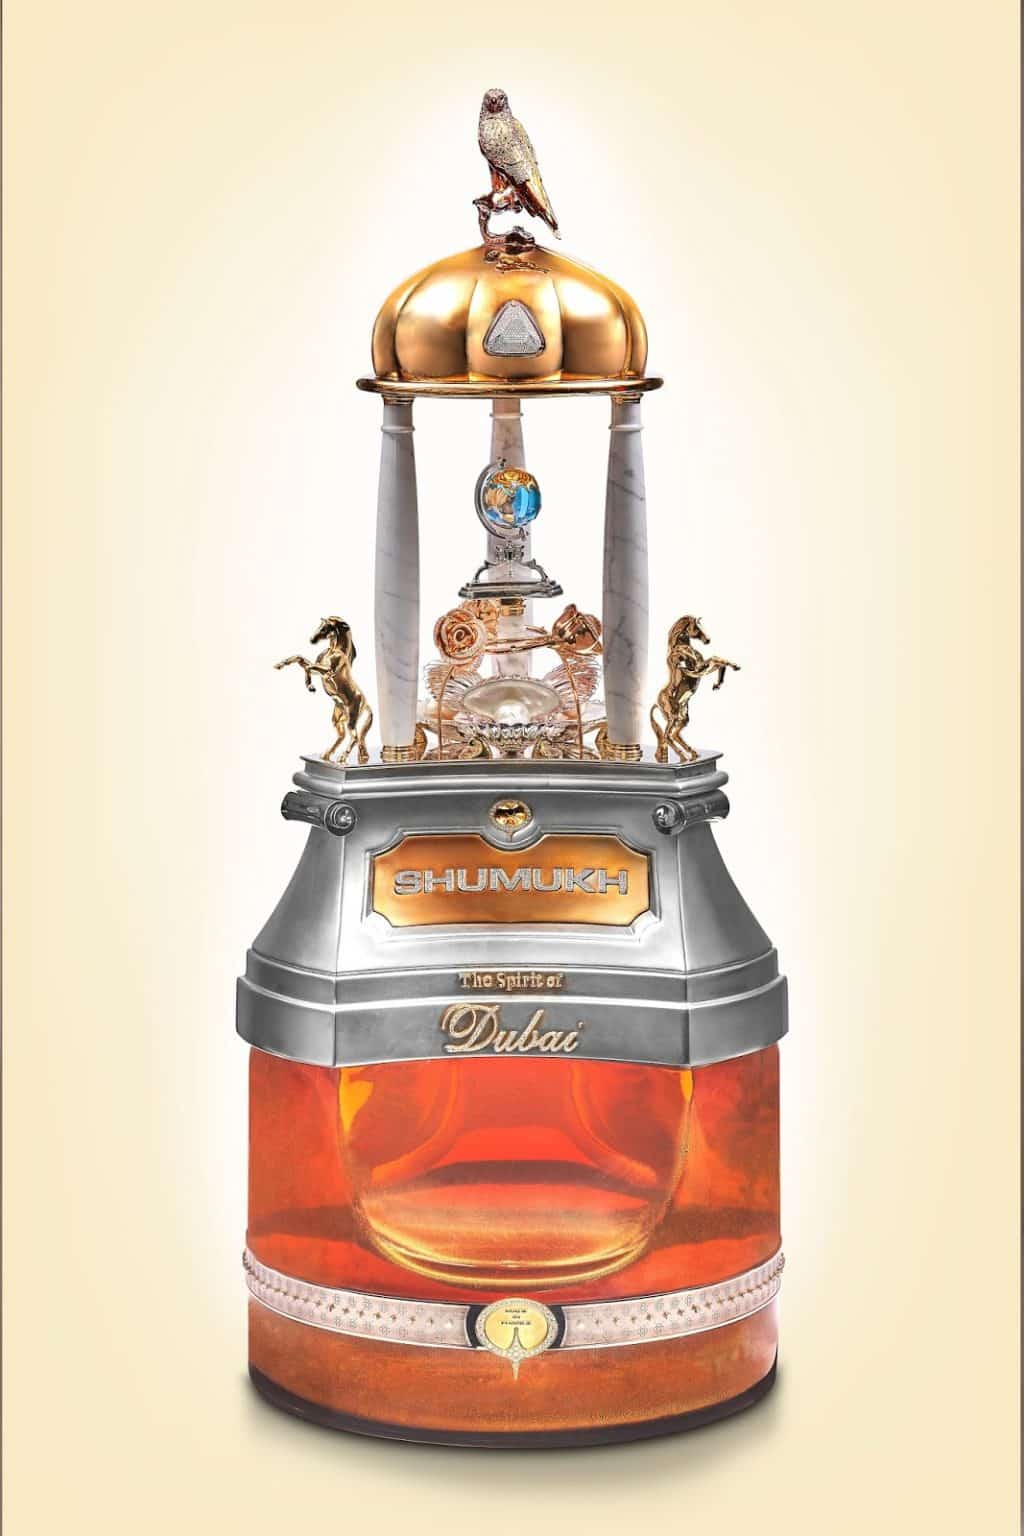 world expensive perfume - 5 things you should know about the world's most expensive perfume